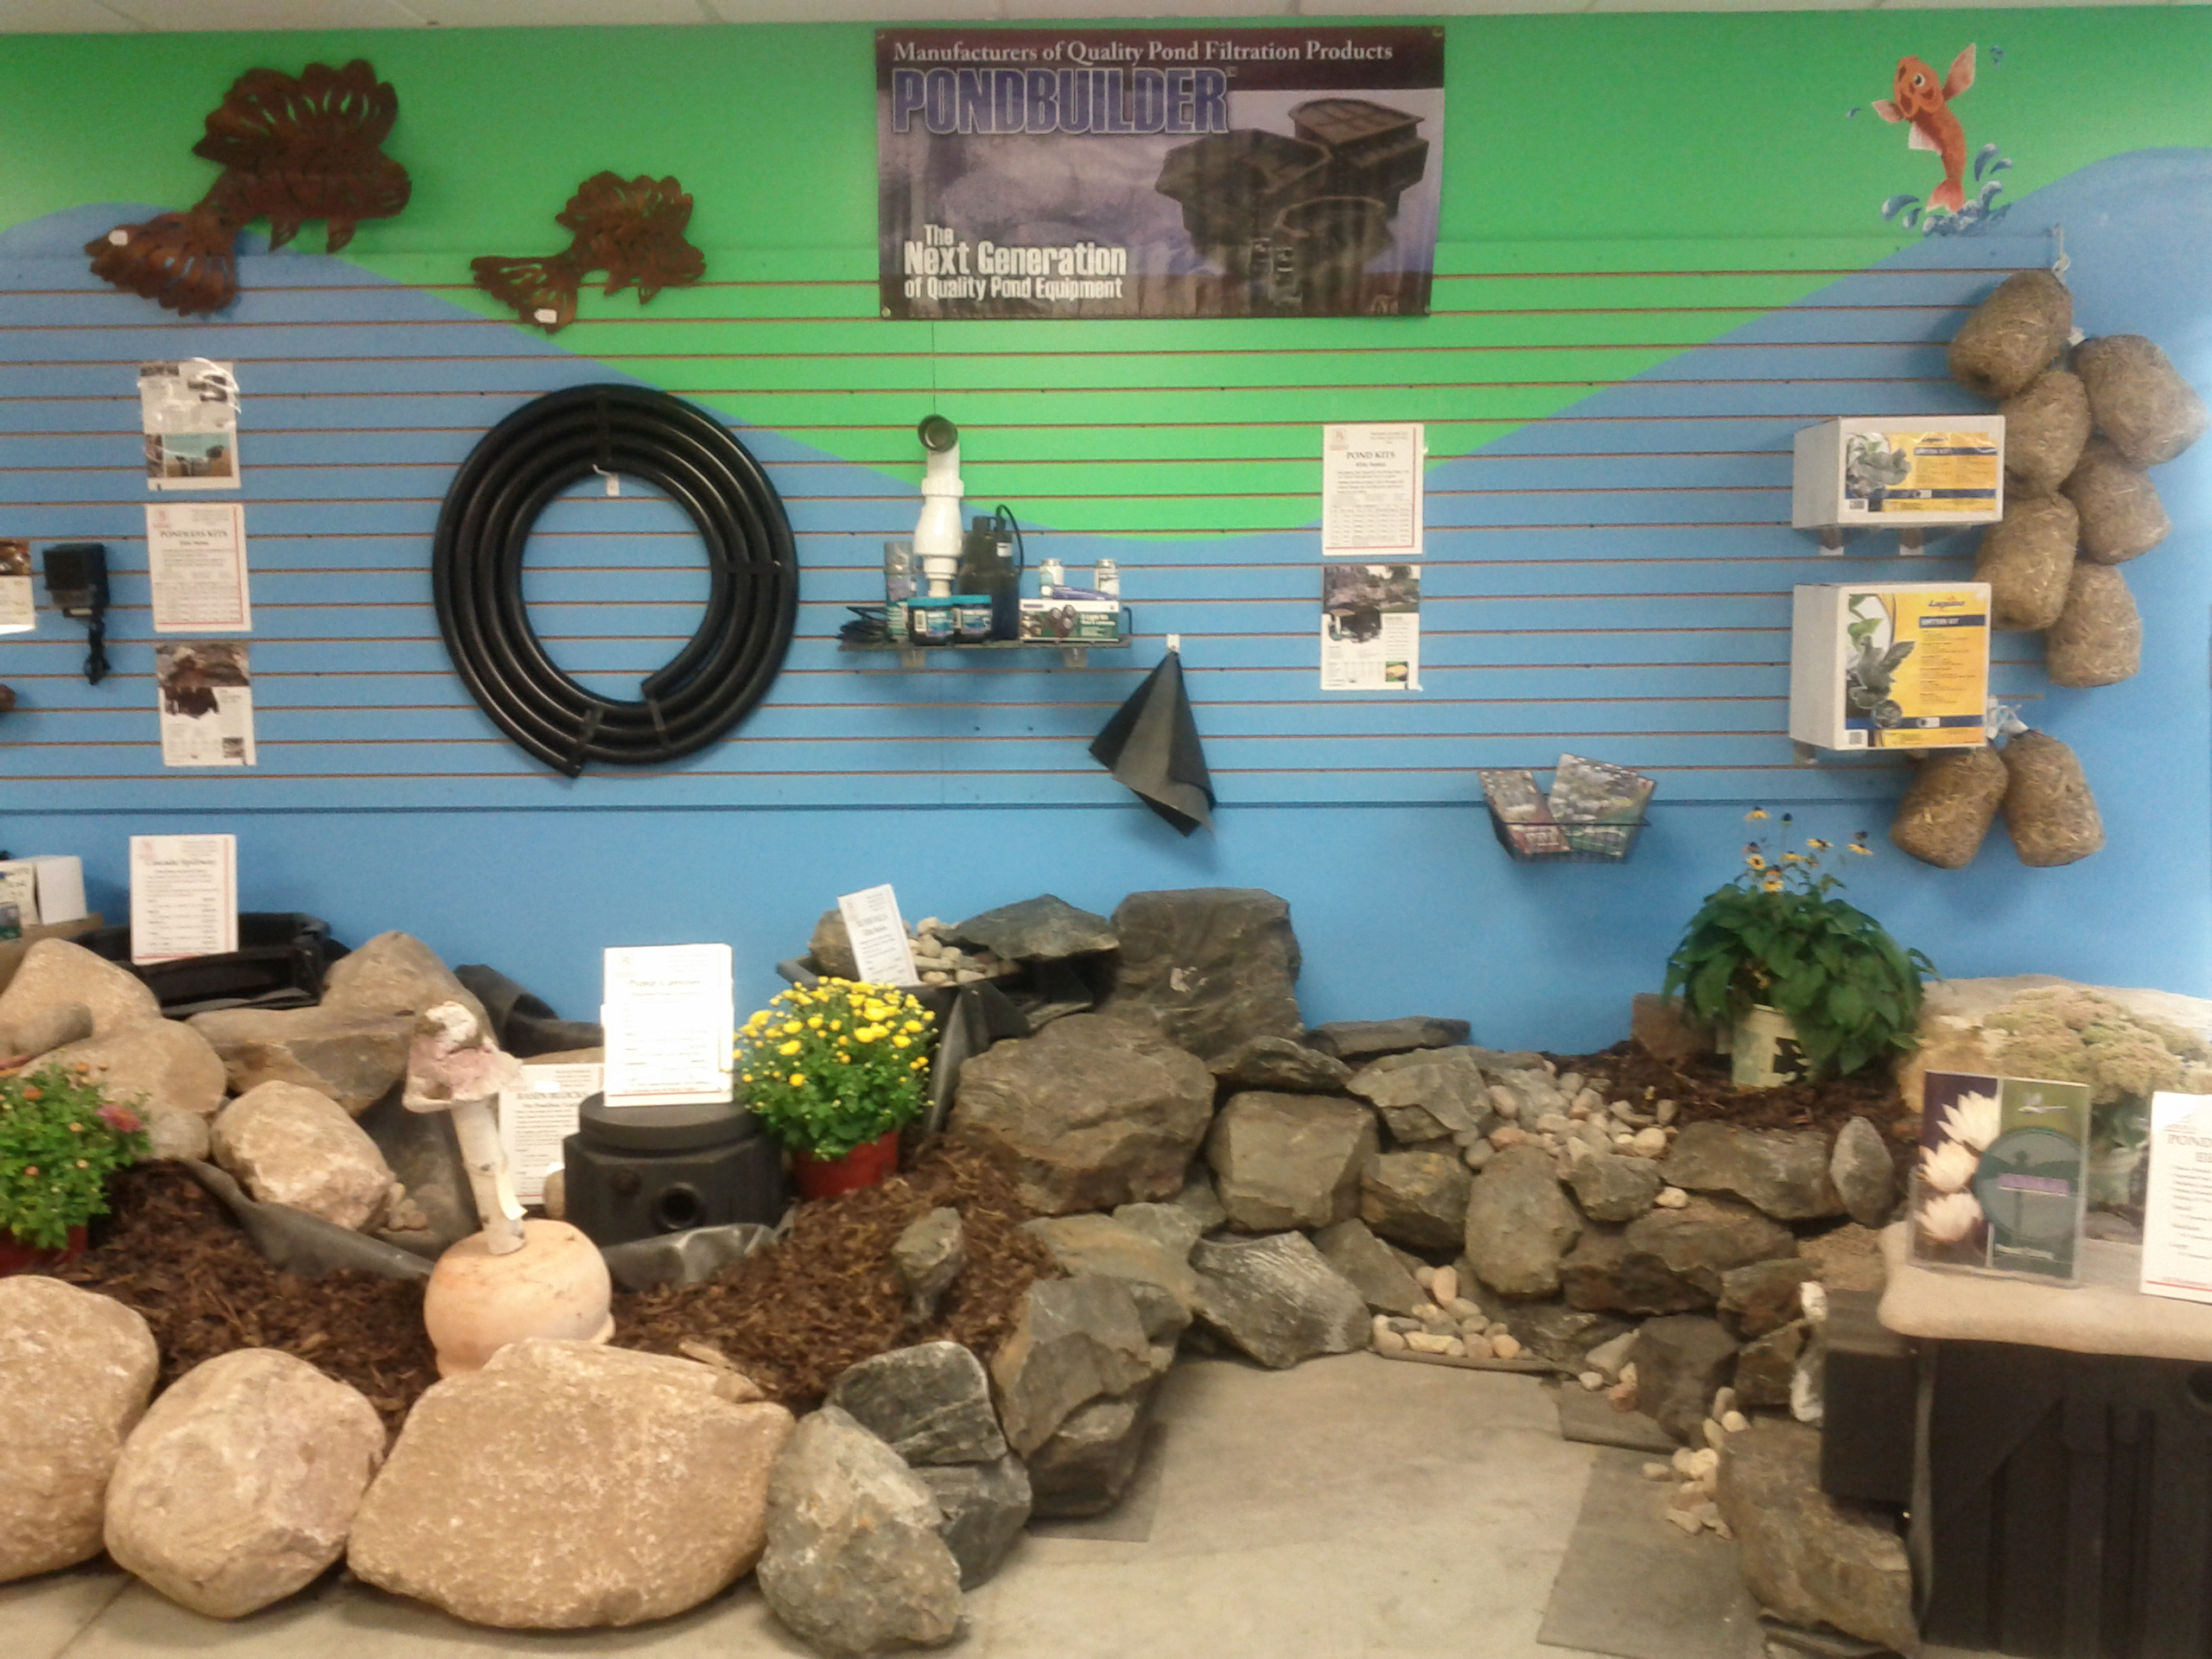 PondBuilder display